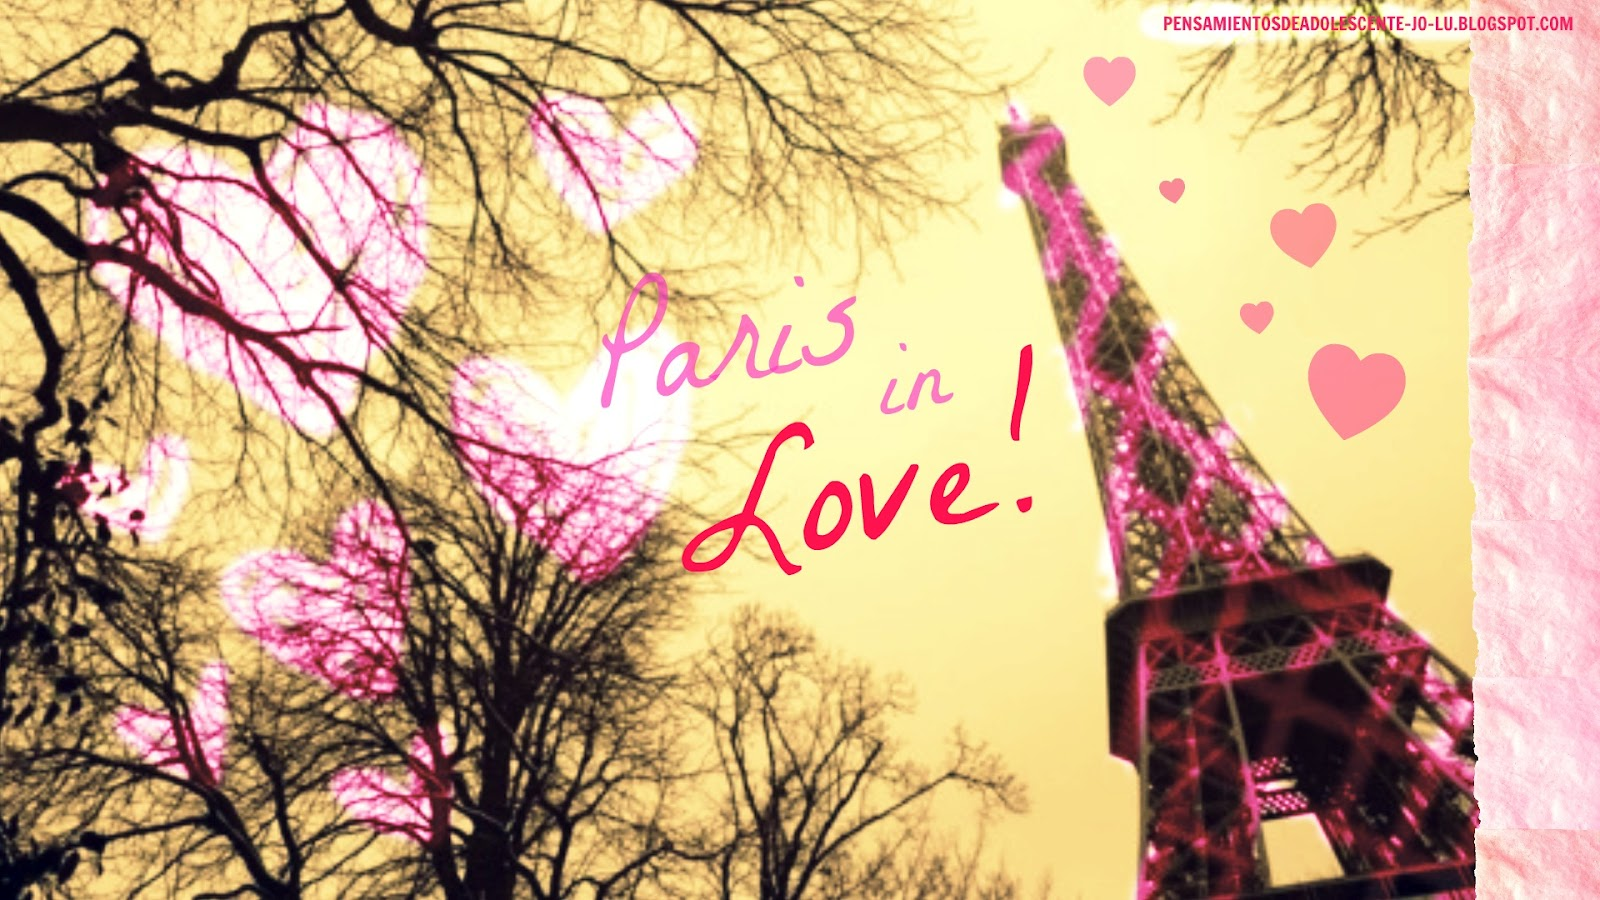 Best Love Wallpapers Tumblr : Paris Is LOVE???? We Heart It paris